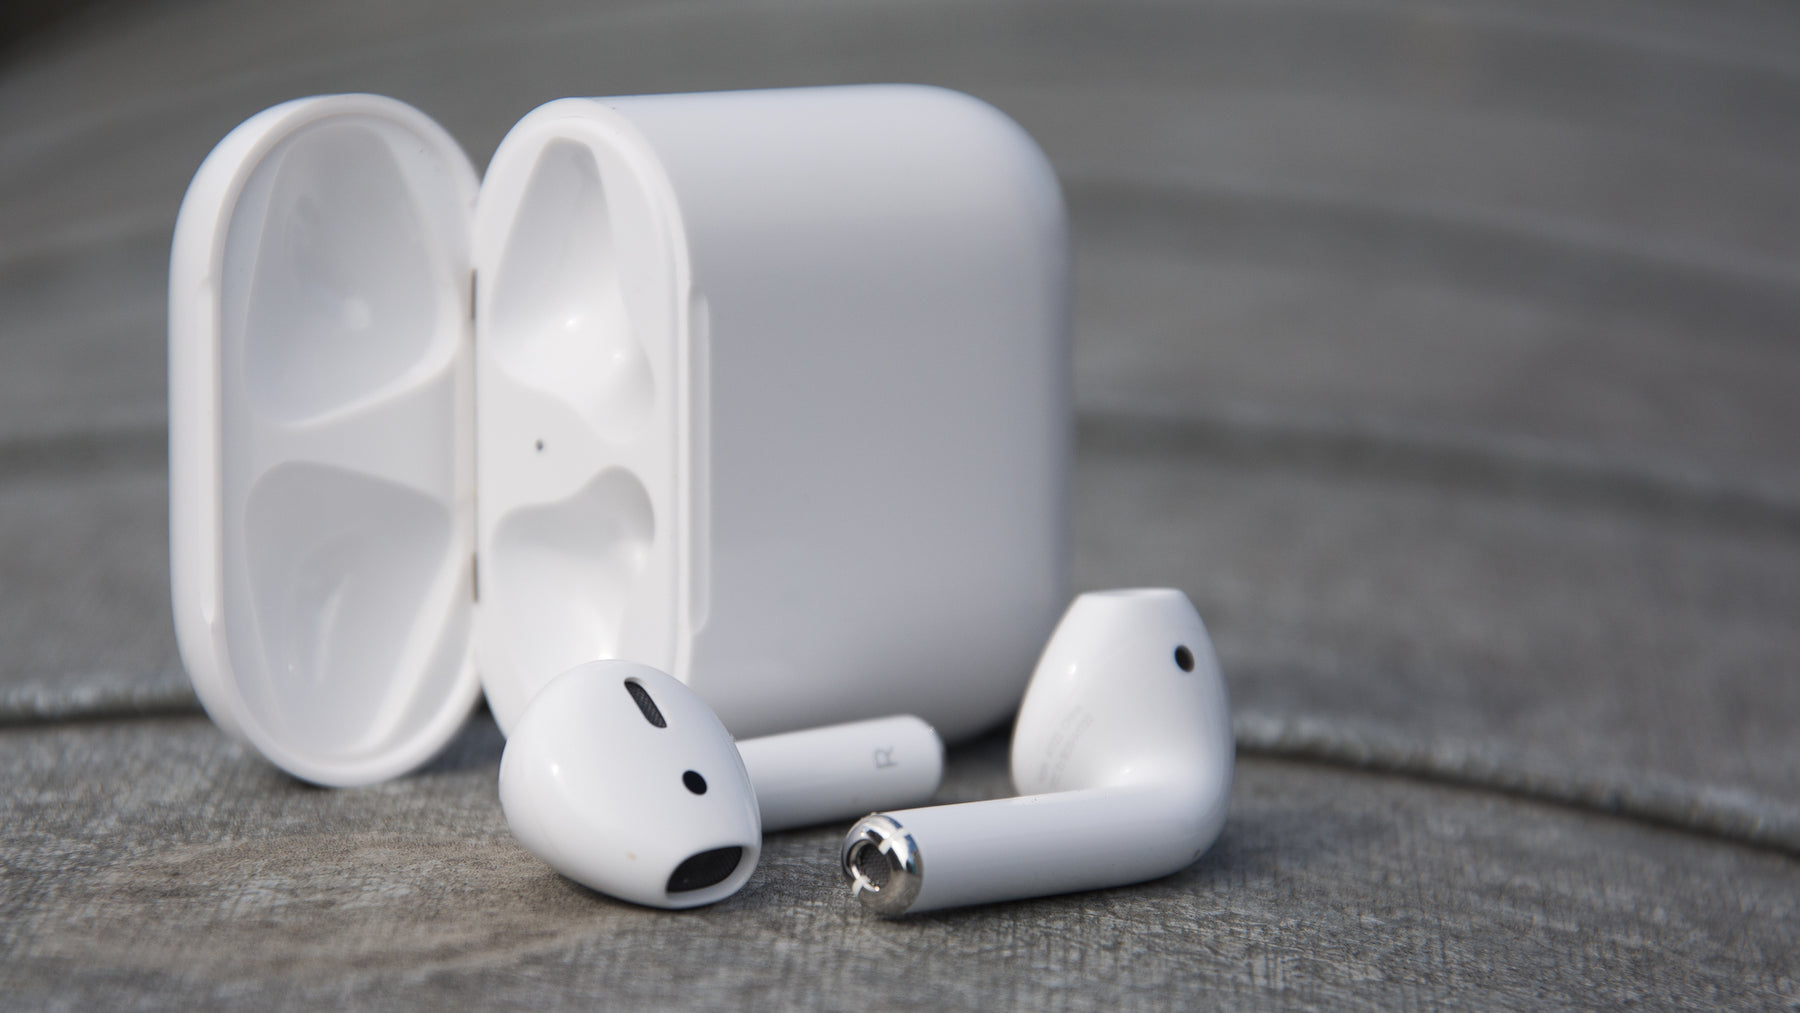 Does Apple Air Pod Worth Buying?